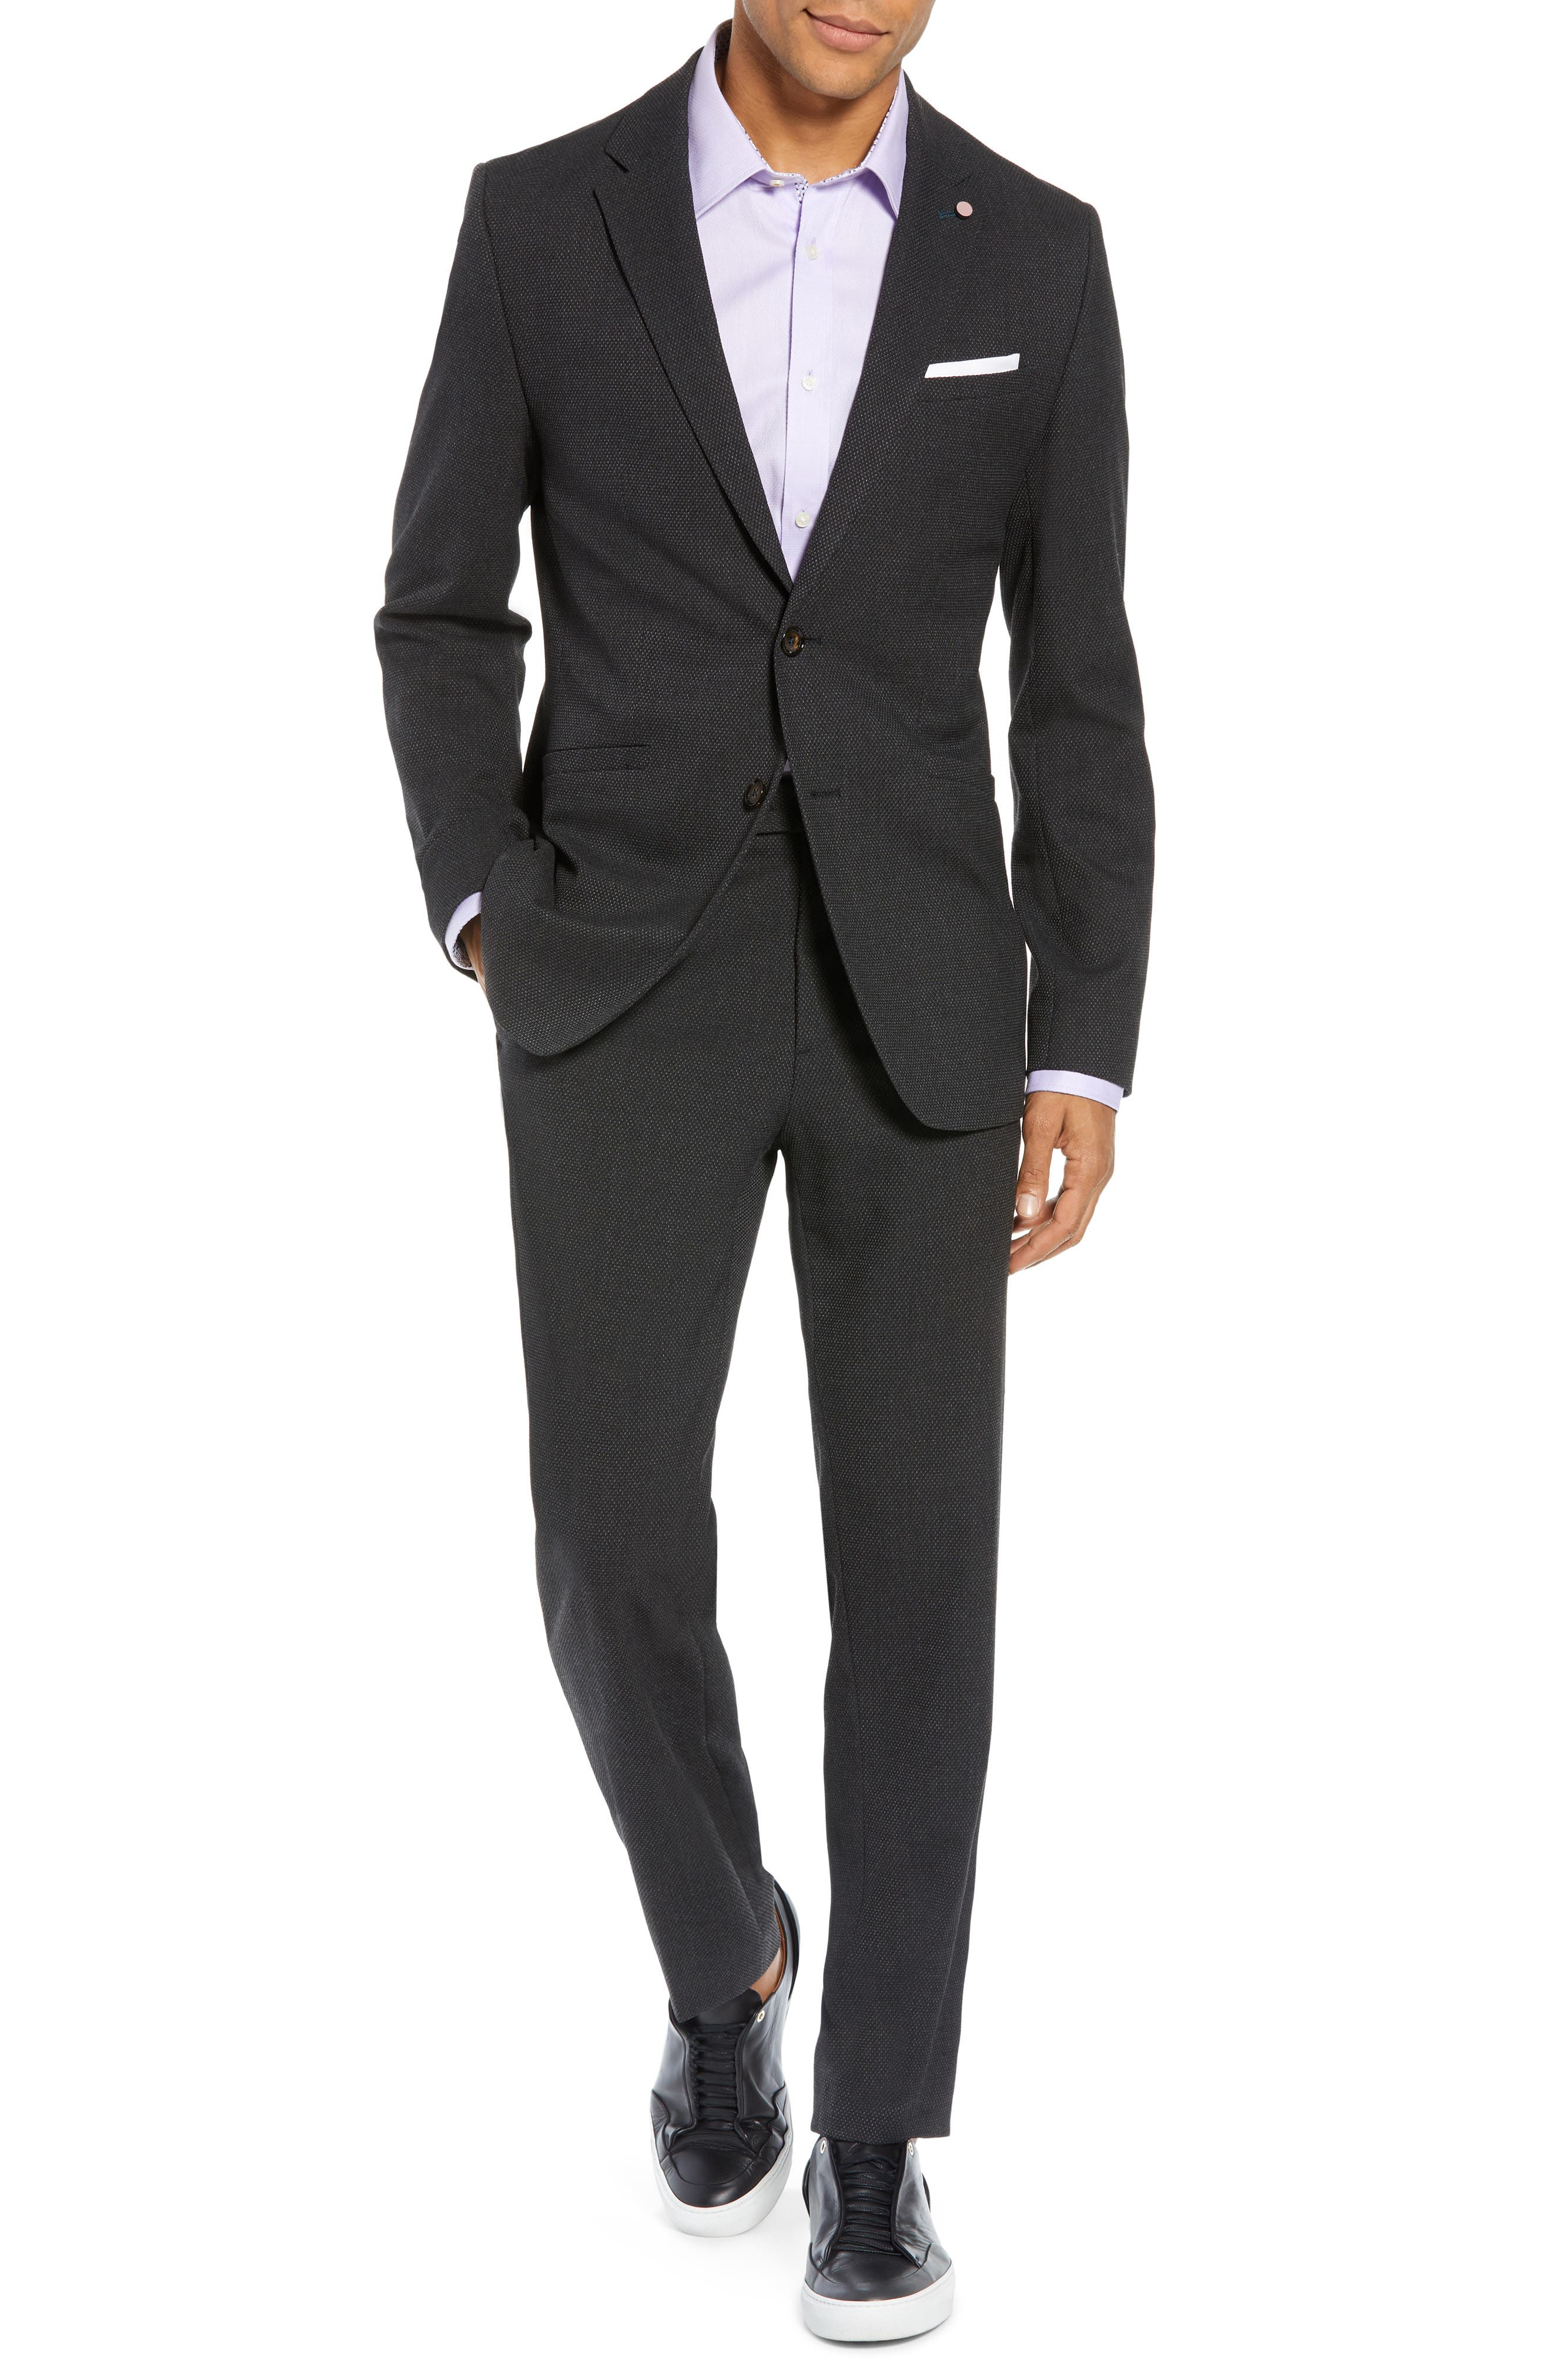 Gorka Slim Fit Suit Jacket,                             Alternate thumbnail 7, color,                             CHARCOAL